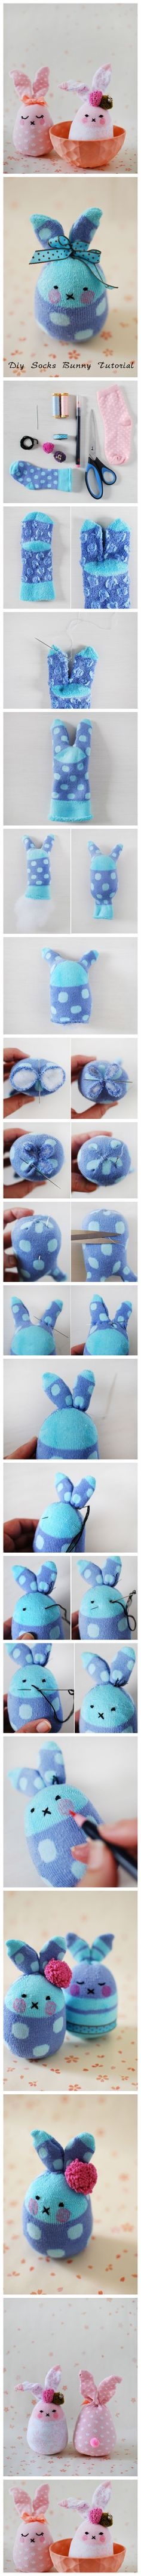 tiny cute kawaii easter bunny rabbit plushie pals to fit in eggs to make for friends happy easter everyone Bricolage Tutorial Lapin Chaussettes Sock Crafts, Cute Crafts, Fabric Crafts, Crafts For Kids, Spring Crafts, Holiday Crafts, Sock Bunny, Bunny Rabbit, Happy Easter Everyone